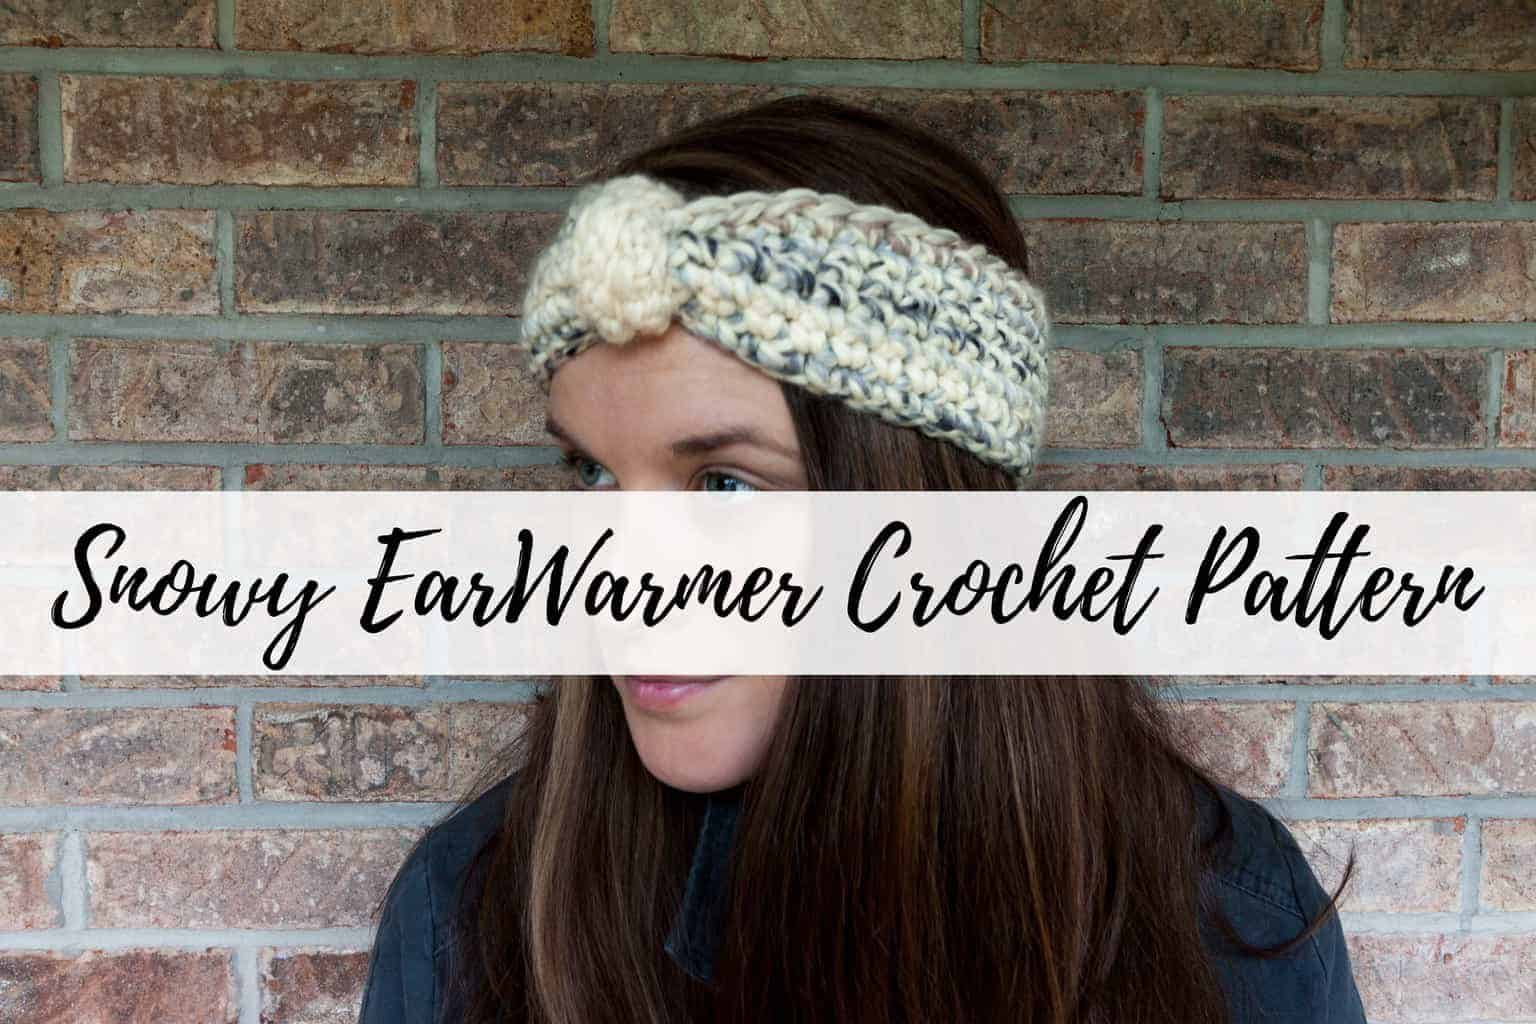 Snowy Crochet Earwarmer Pattern by Easy Crochet - Make this easy beginner friendly pattern today!